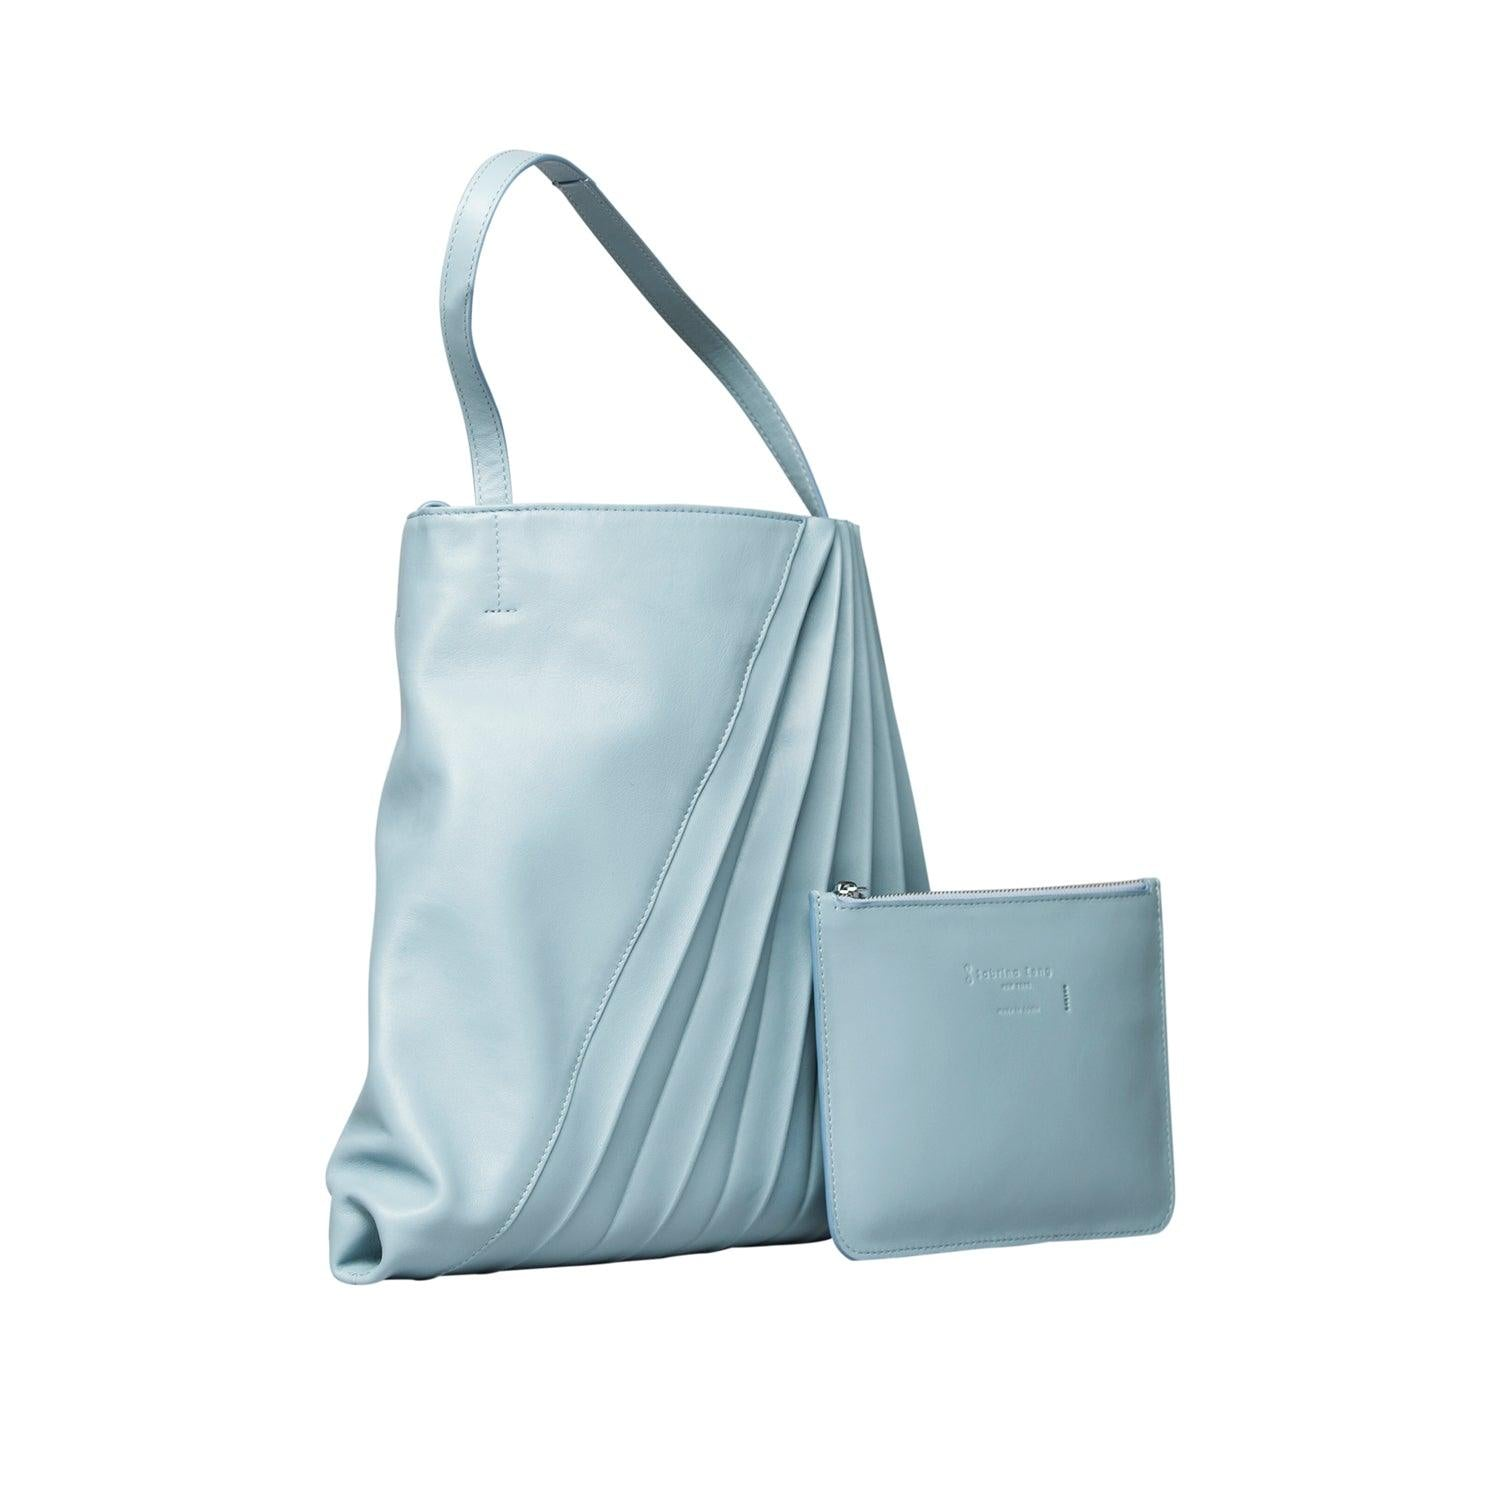 Small 860100 Chiaroscuro Weekend Tote: ♥ 22 Days of Women Empowerment Programs